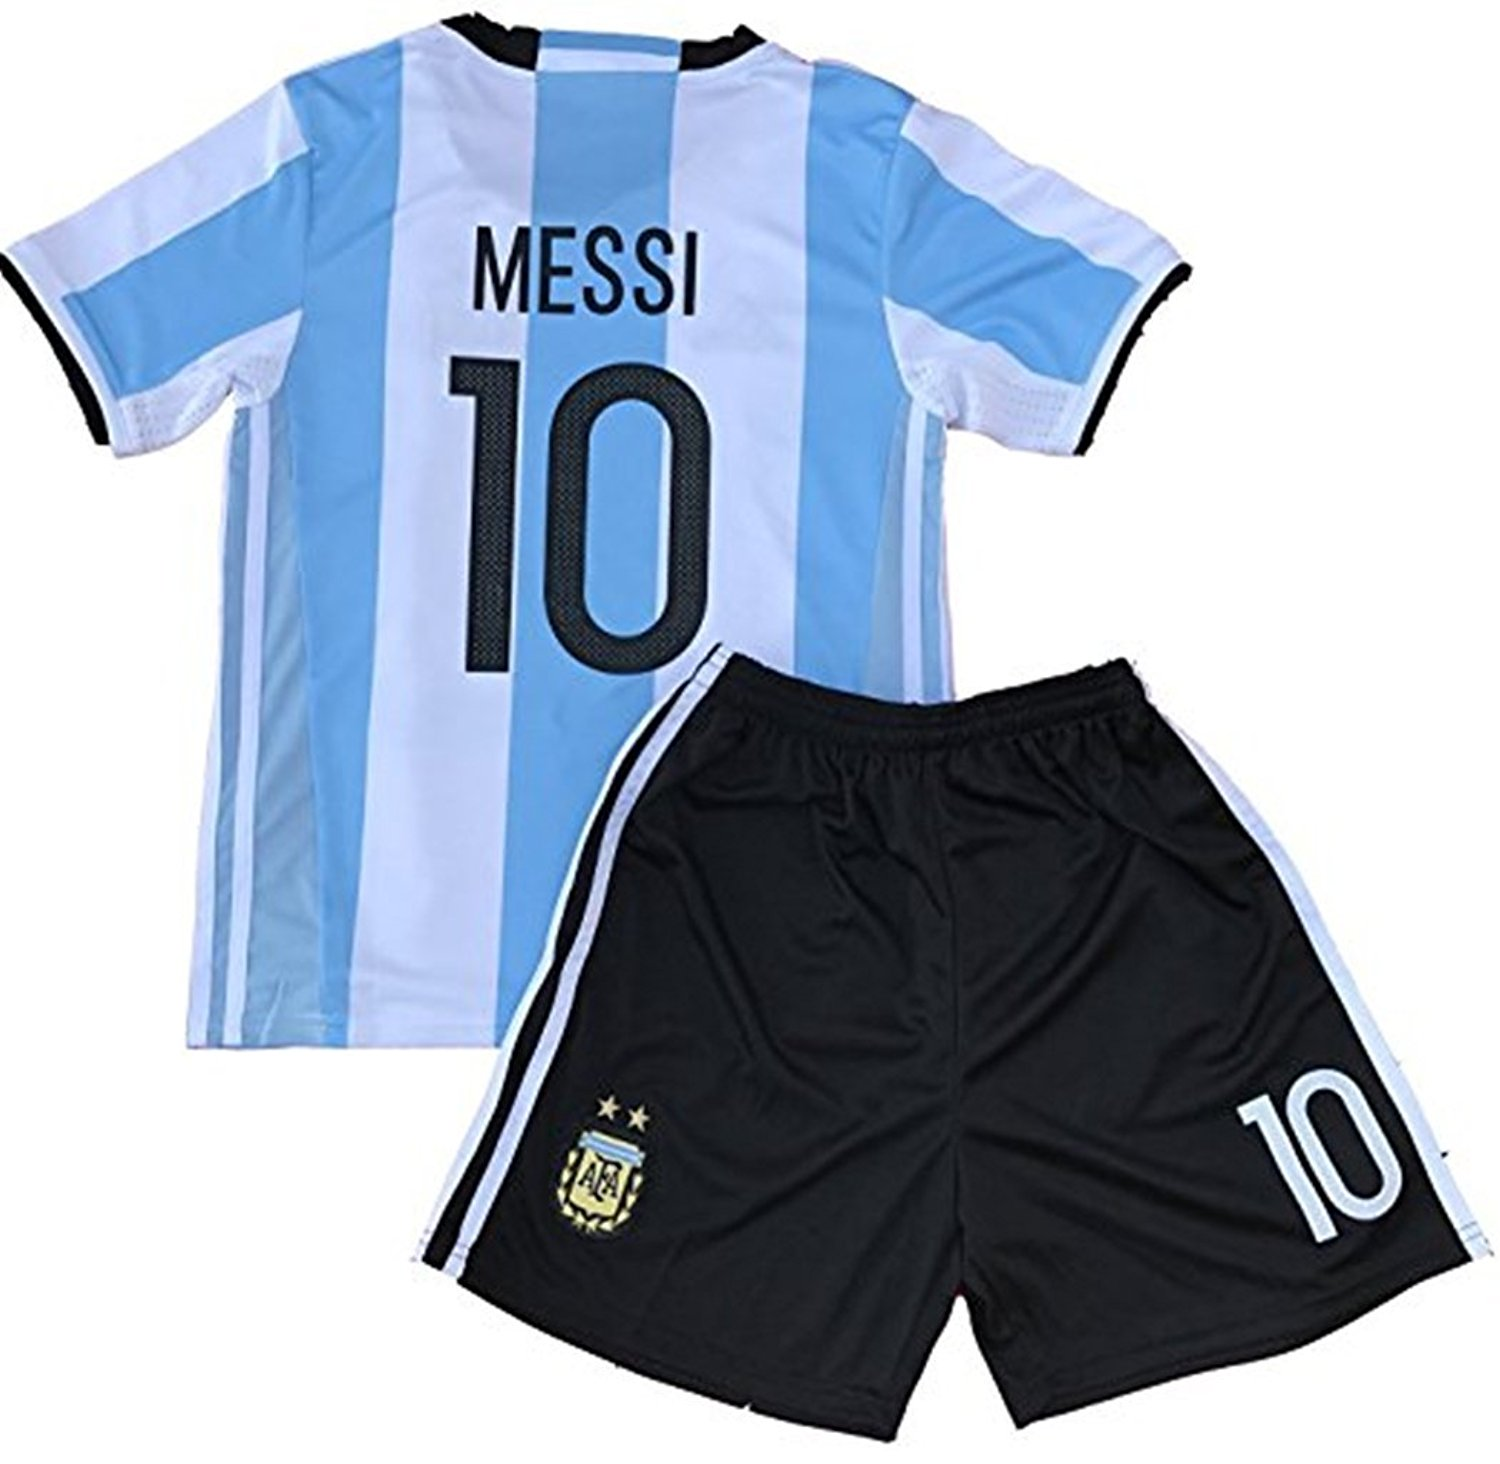 279614579 Get Quotations · RussiaJRS 10 Messi Jersey 2018 Russia World Cup Argentina  Home Soccer Jersey Youth Kids Jersey